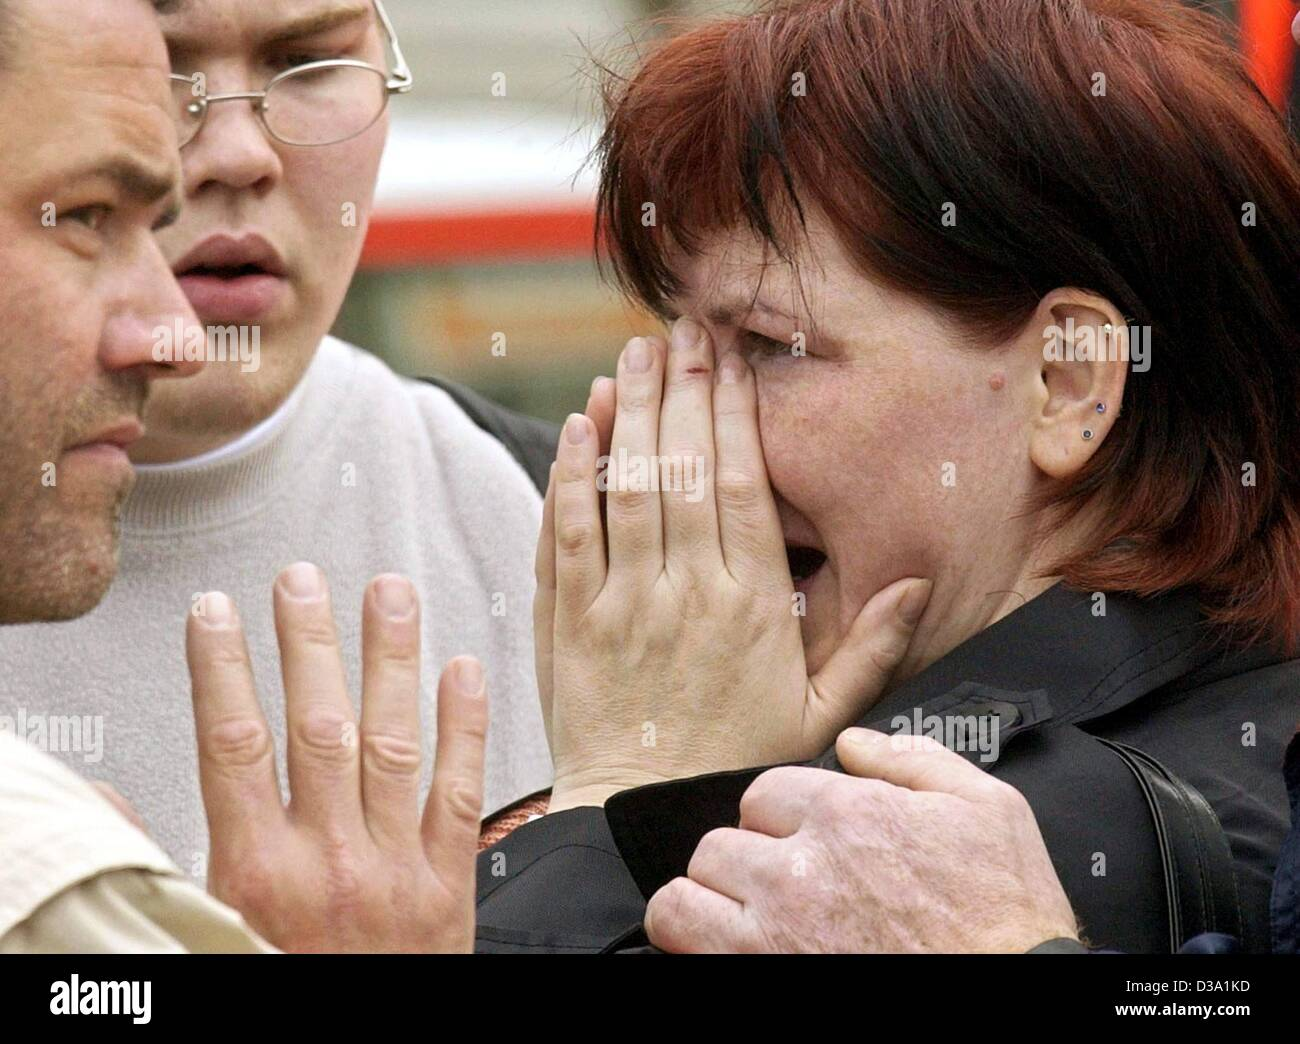 (dpa) - Relatives are crying in fear for their beloved in front of the Erfurt 'Gutenberg Gymnasium', 26 - Stock Image